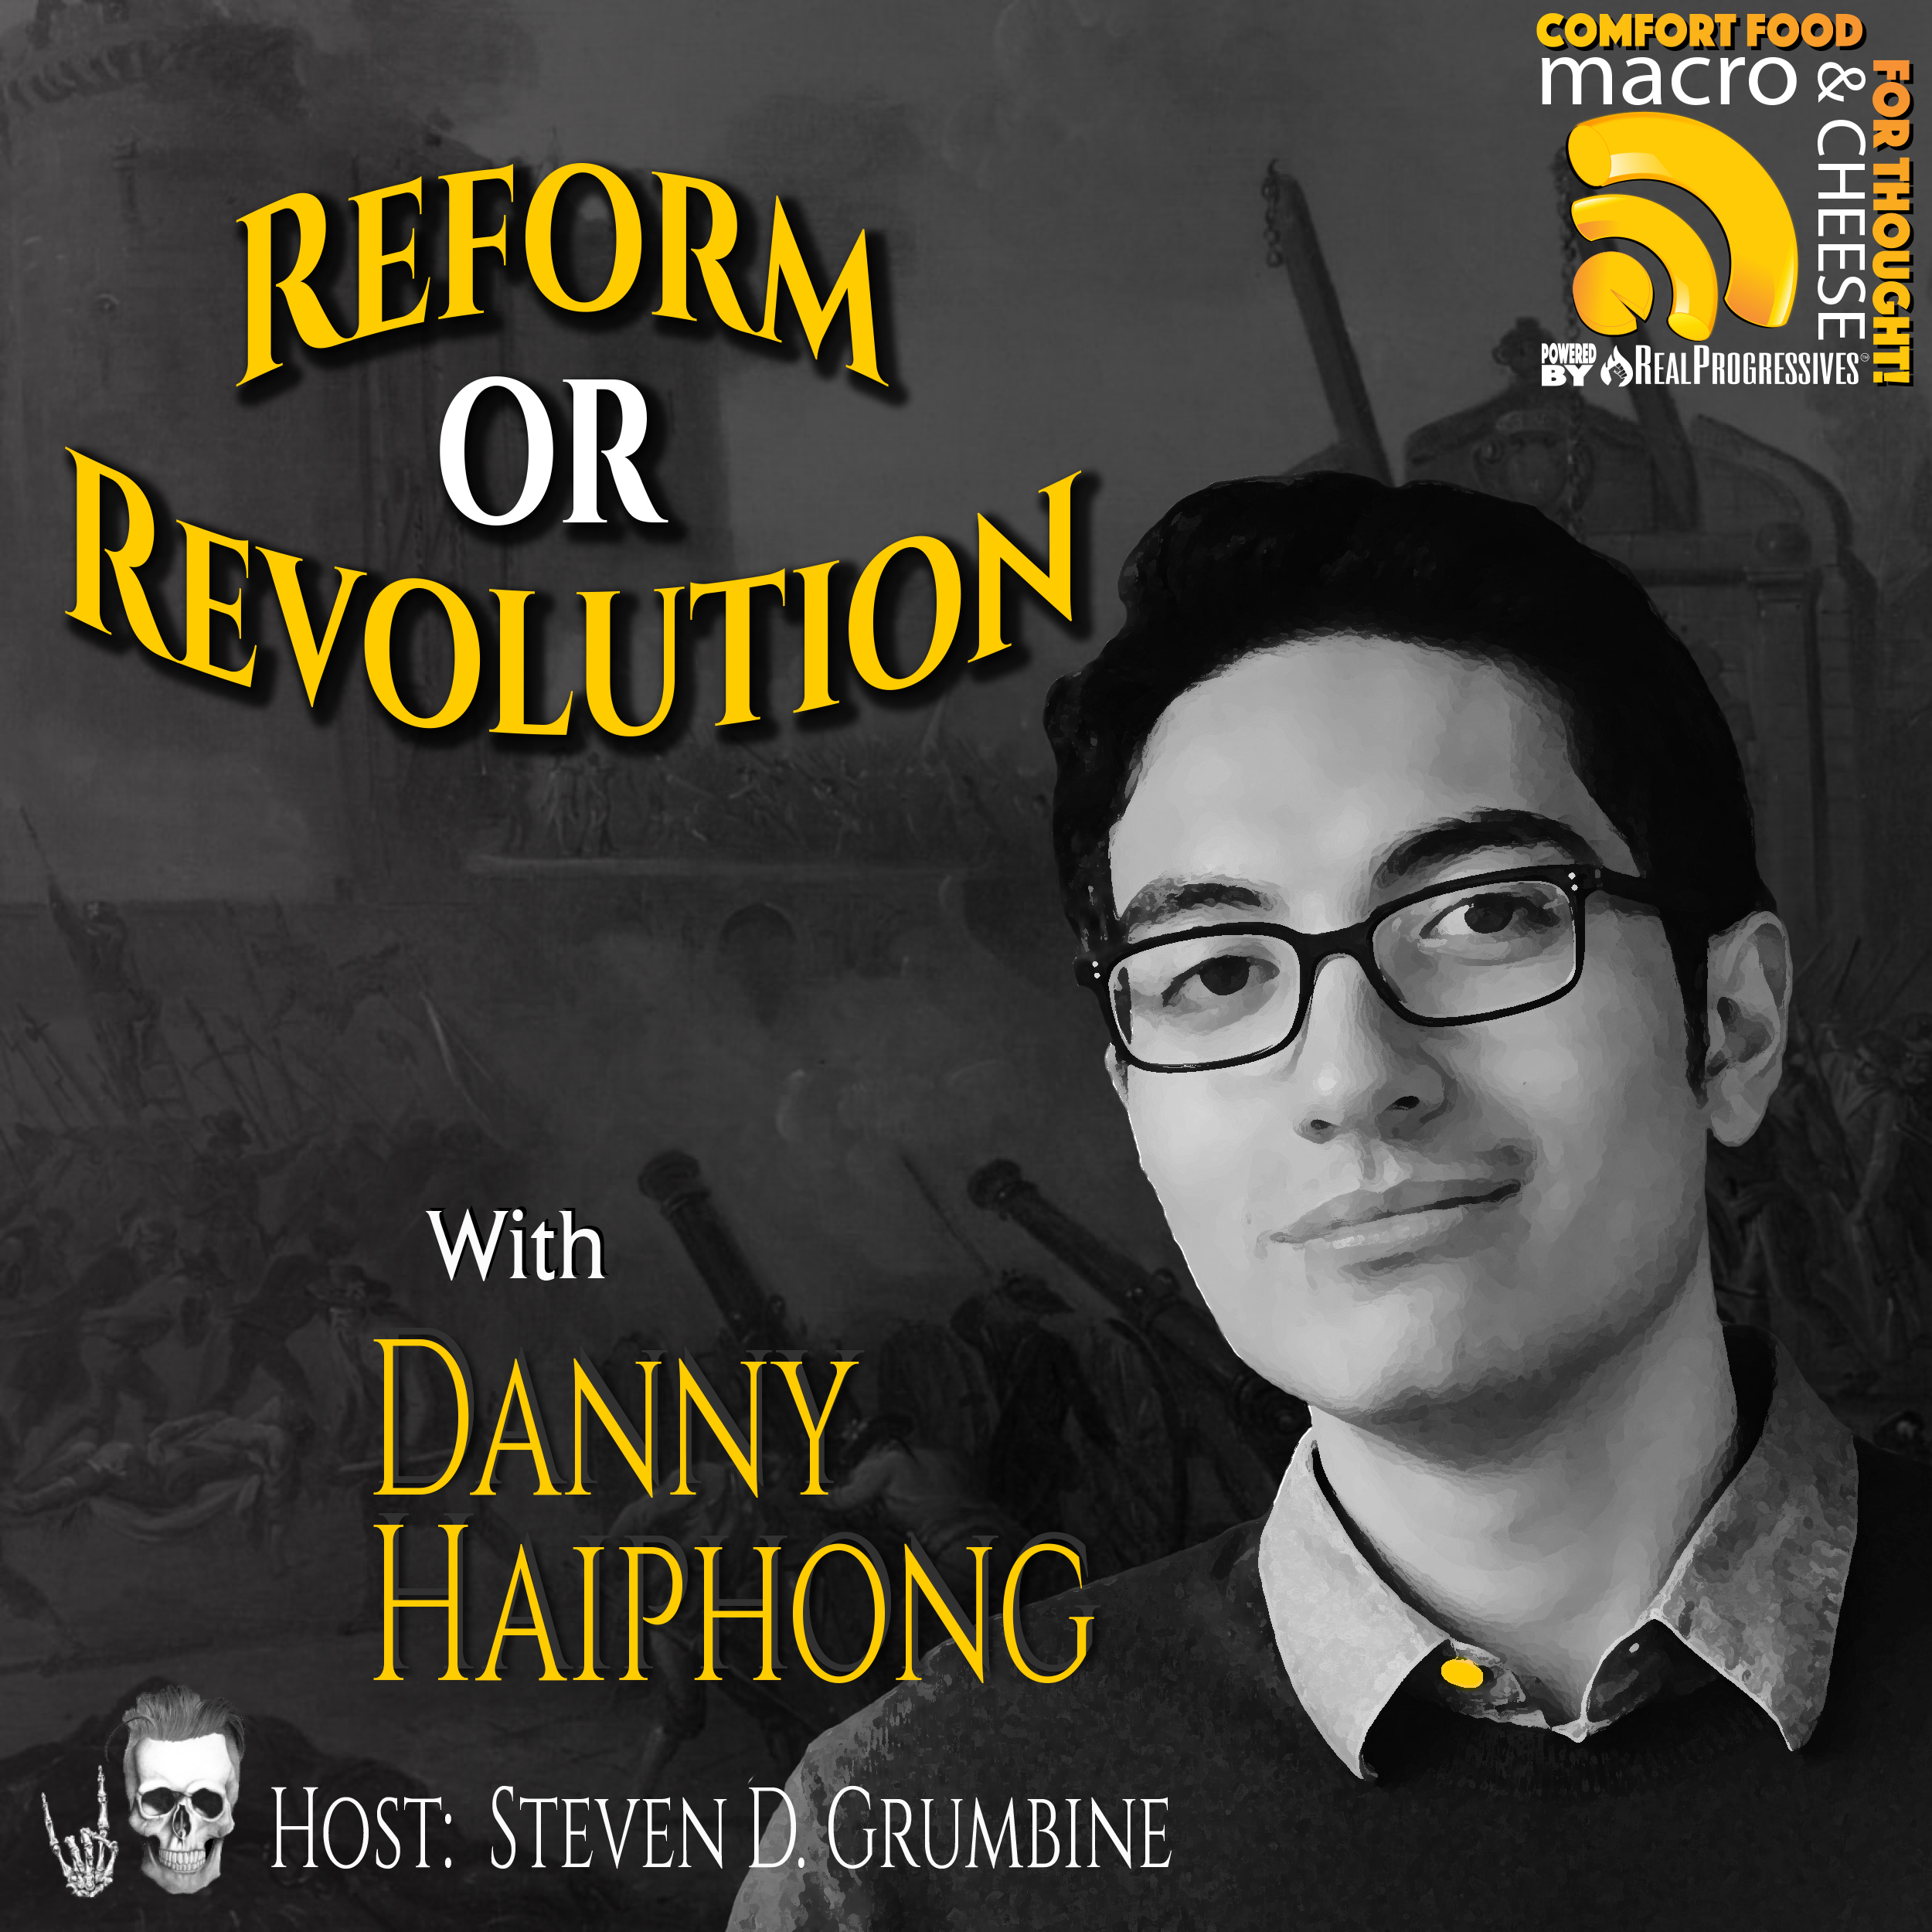 Reform or Revolution with Danny Haiphong